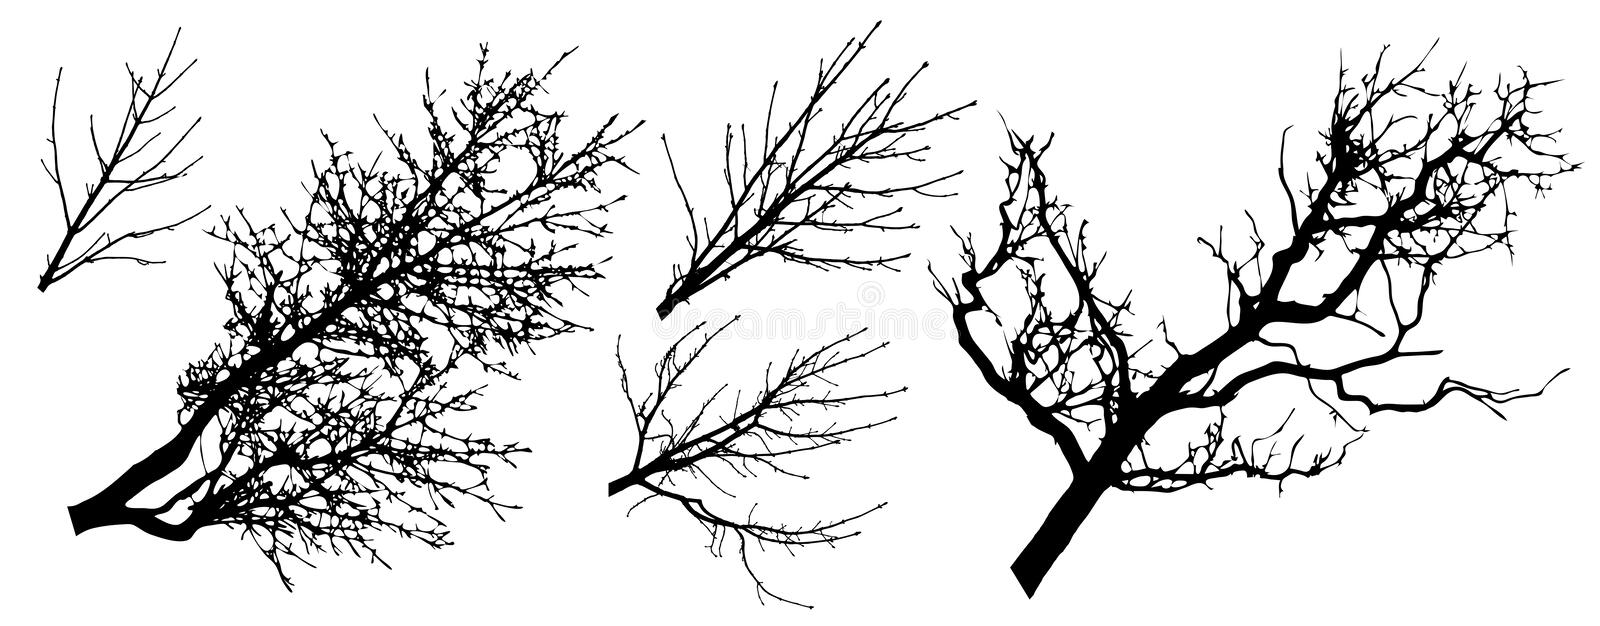 Set of tree branches silhouettes, vector illustration vector illustration